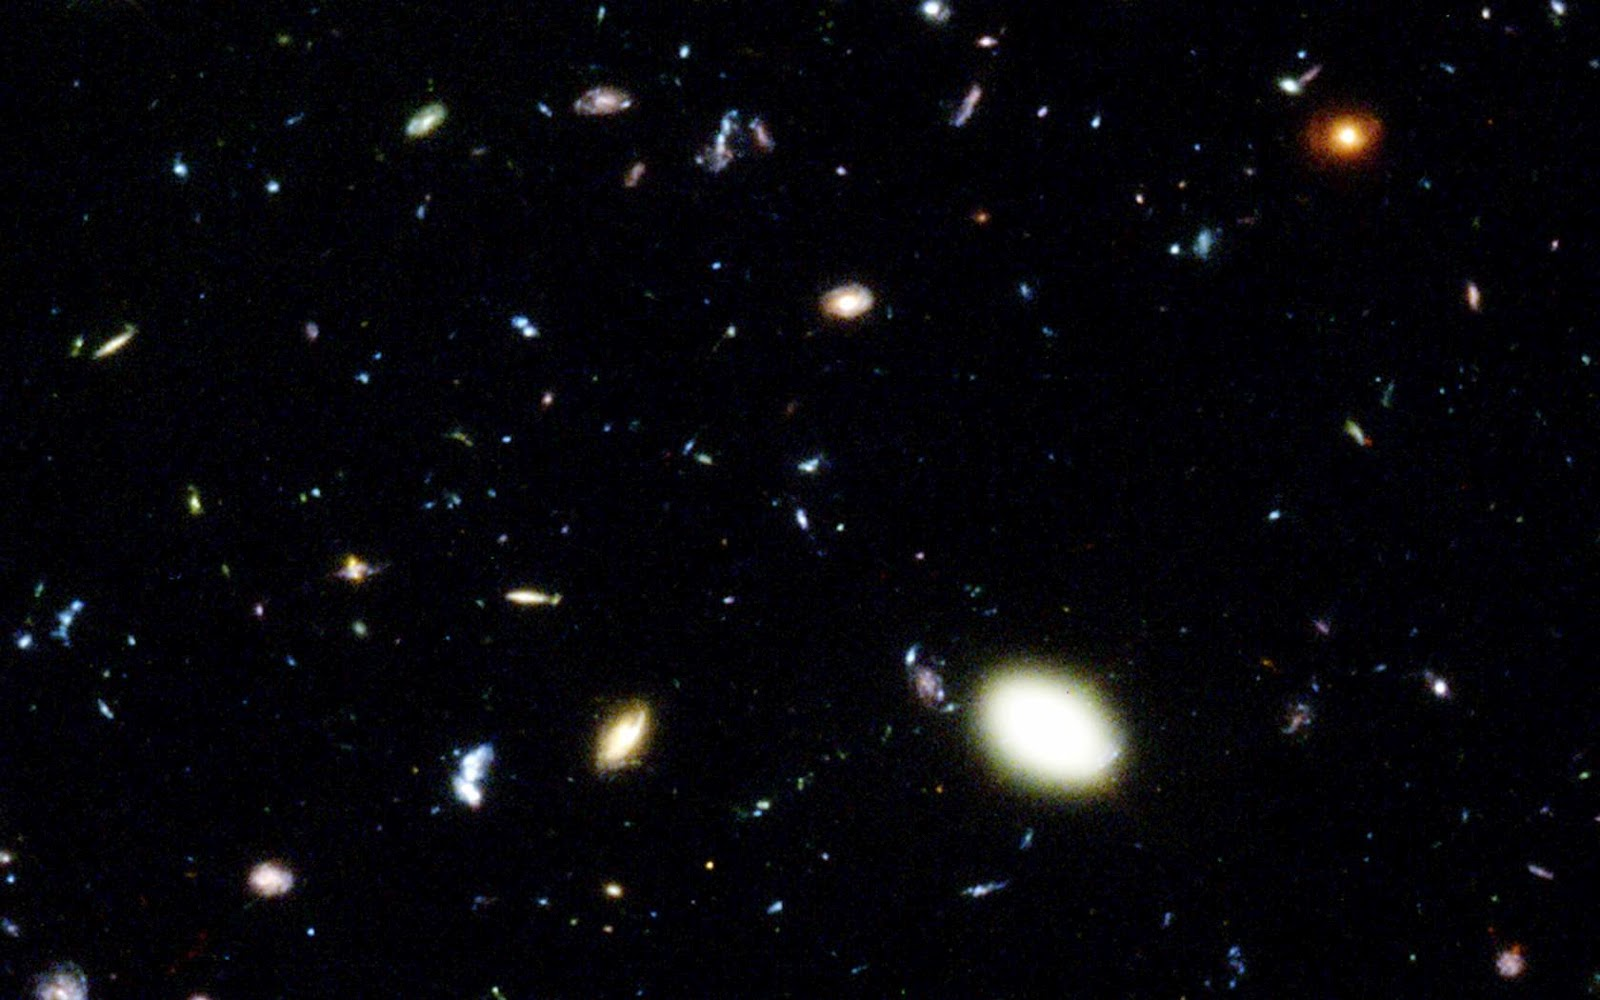 hubble deep field wallpaper 1600x1200-#8